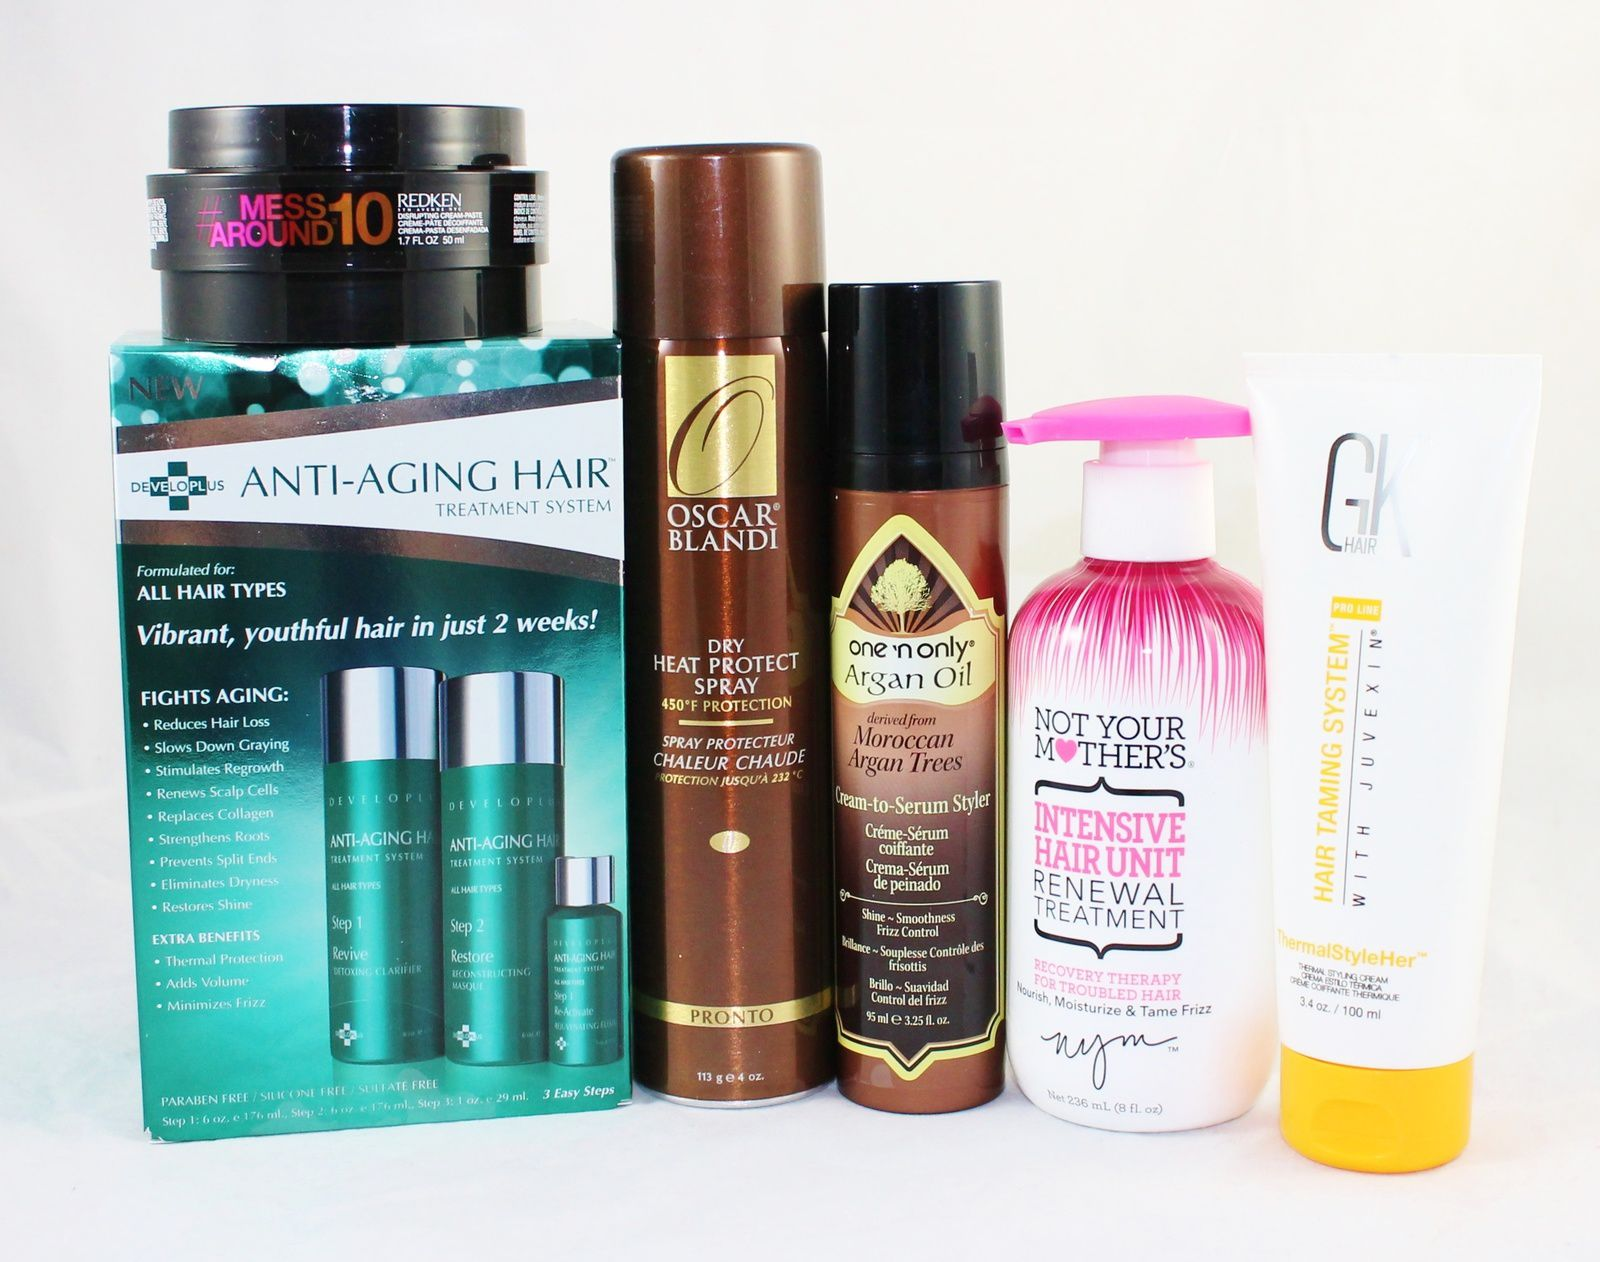 Redken Mess Around 10 Disrupting Cream-Paste, Developlus Anti-aging Hair Treatment System, Oscar Blandi Pronto Dry Heat Protect Spray, One'n Only Argan Oil Cream-to-Serum Styler, Not Your Mother's Intensive Hair Unit Renewal Treatment & GK Hair ThermalStyleHer